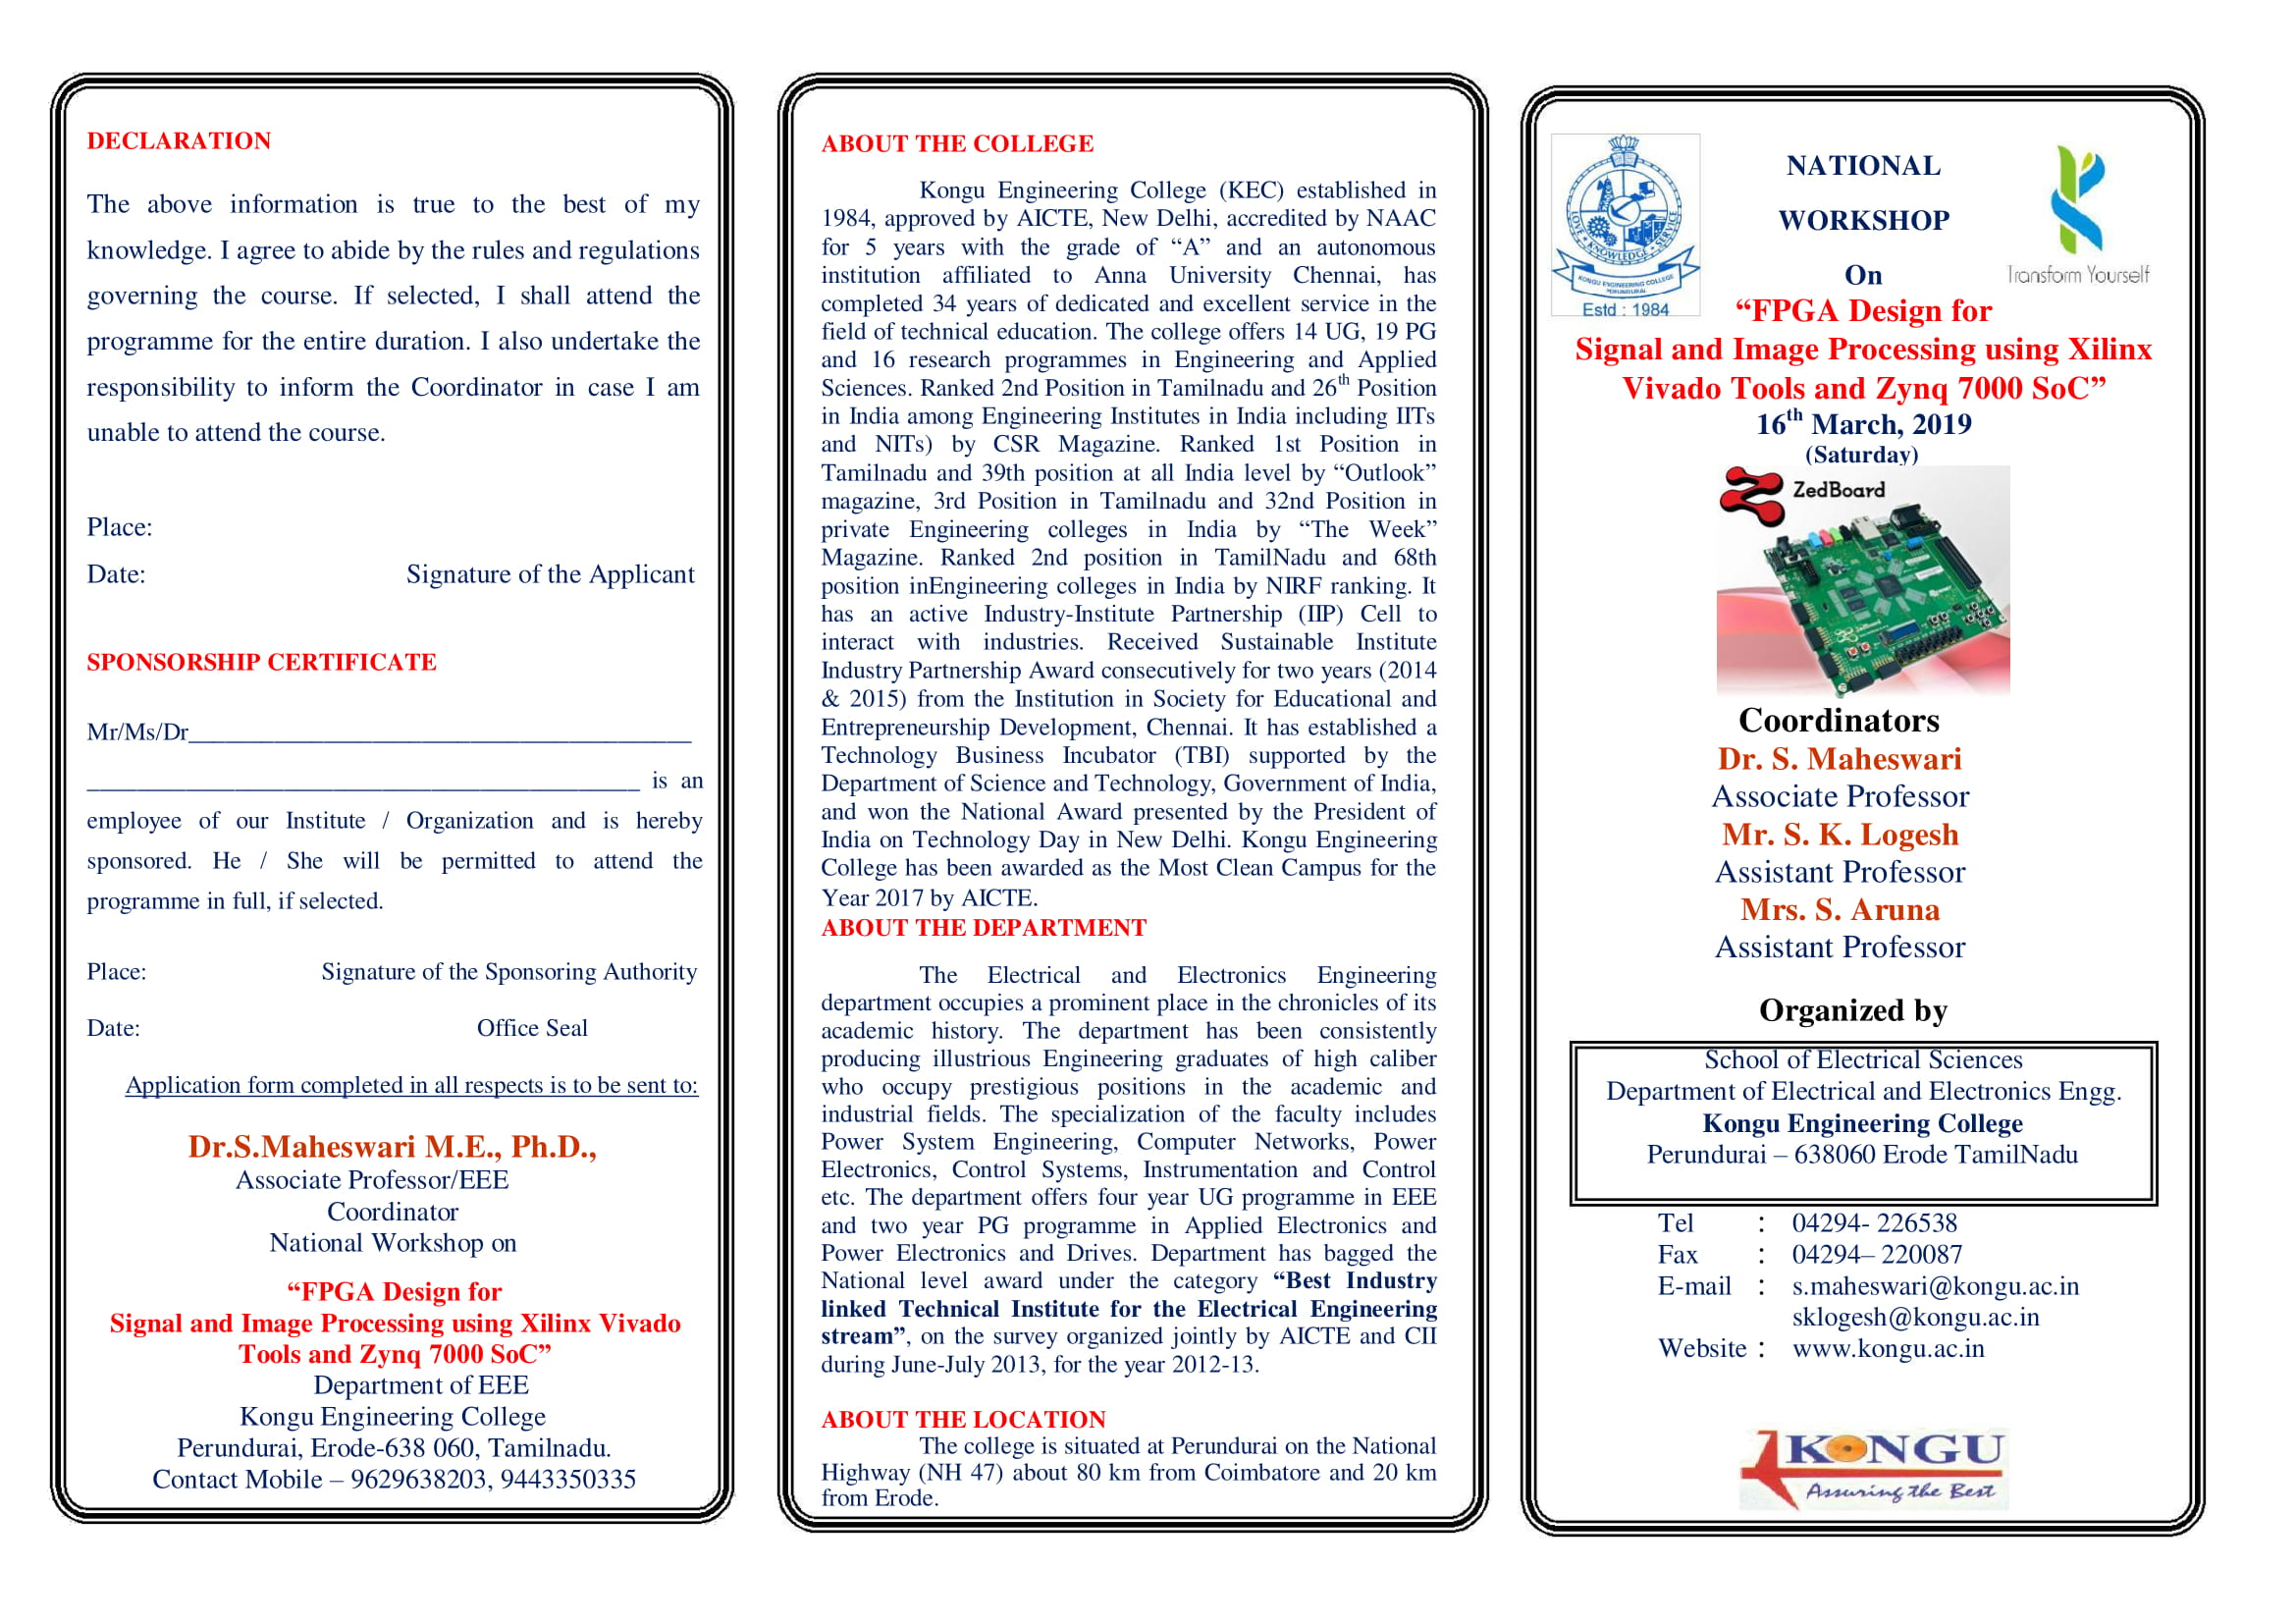 """NATIONAL WORKSHOP On """"FPGA Design for Signal and Image Processing using Xilinx Vivado Tools and Zynq 7000 SoC"""", Erode, Tamil Nadu, India"""